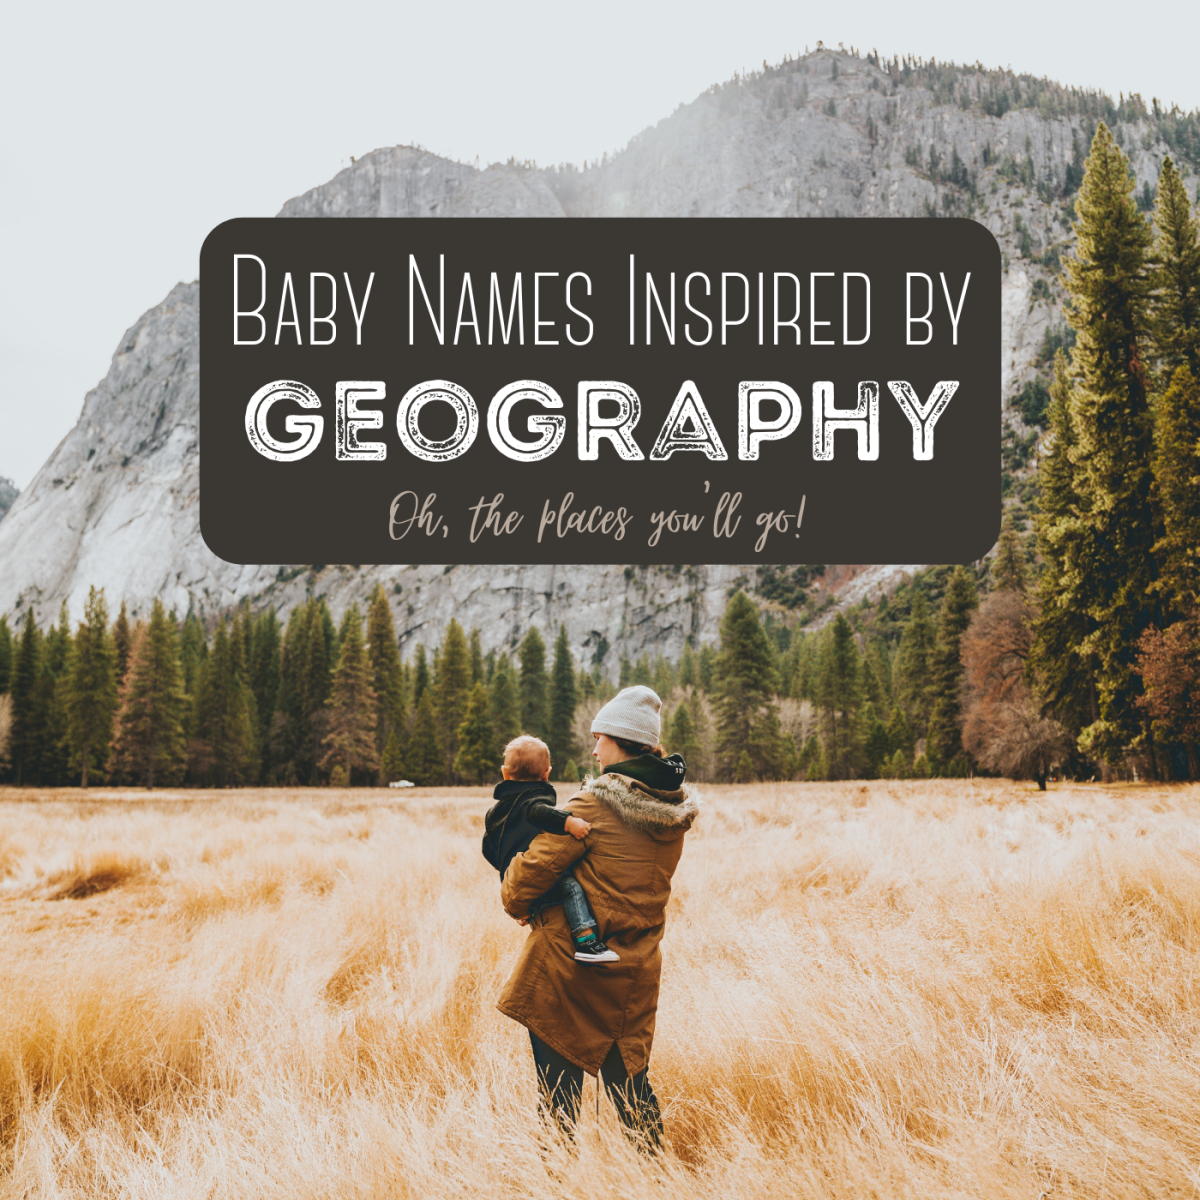 If you want to take inspiration from a city or place for your baby's name, here are more than 50 suggestions for girls', boys', and unisex names.